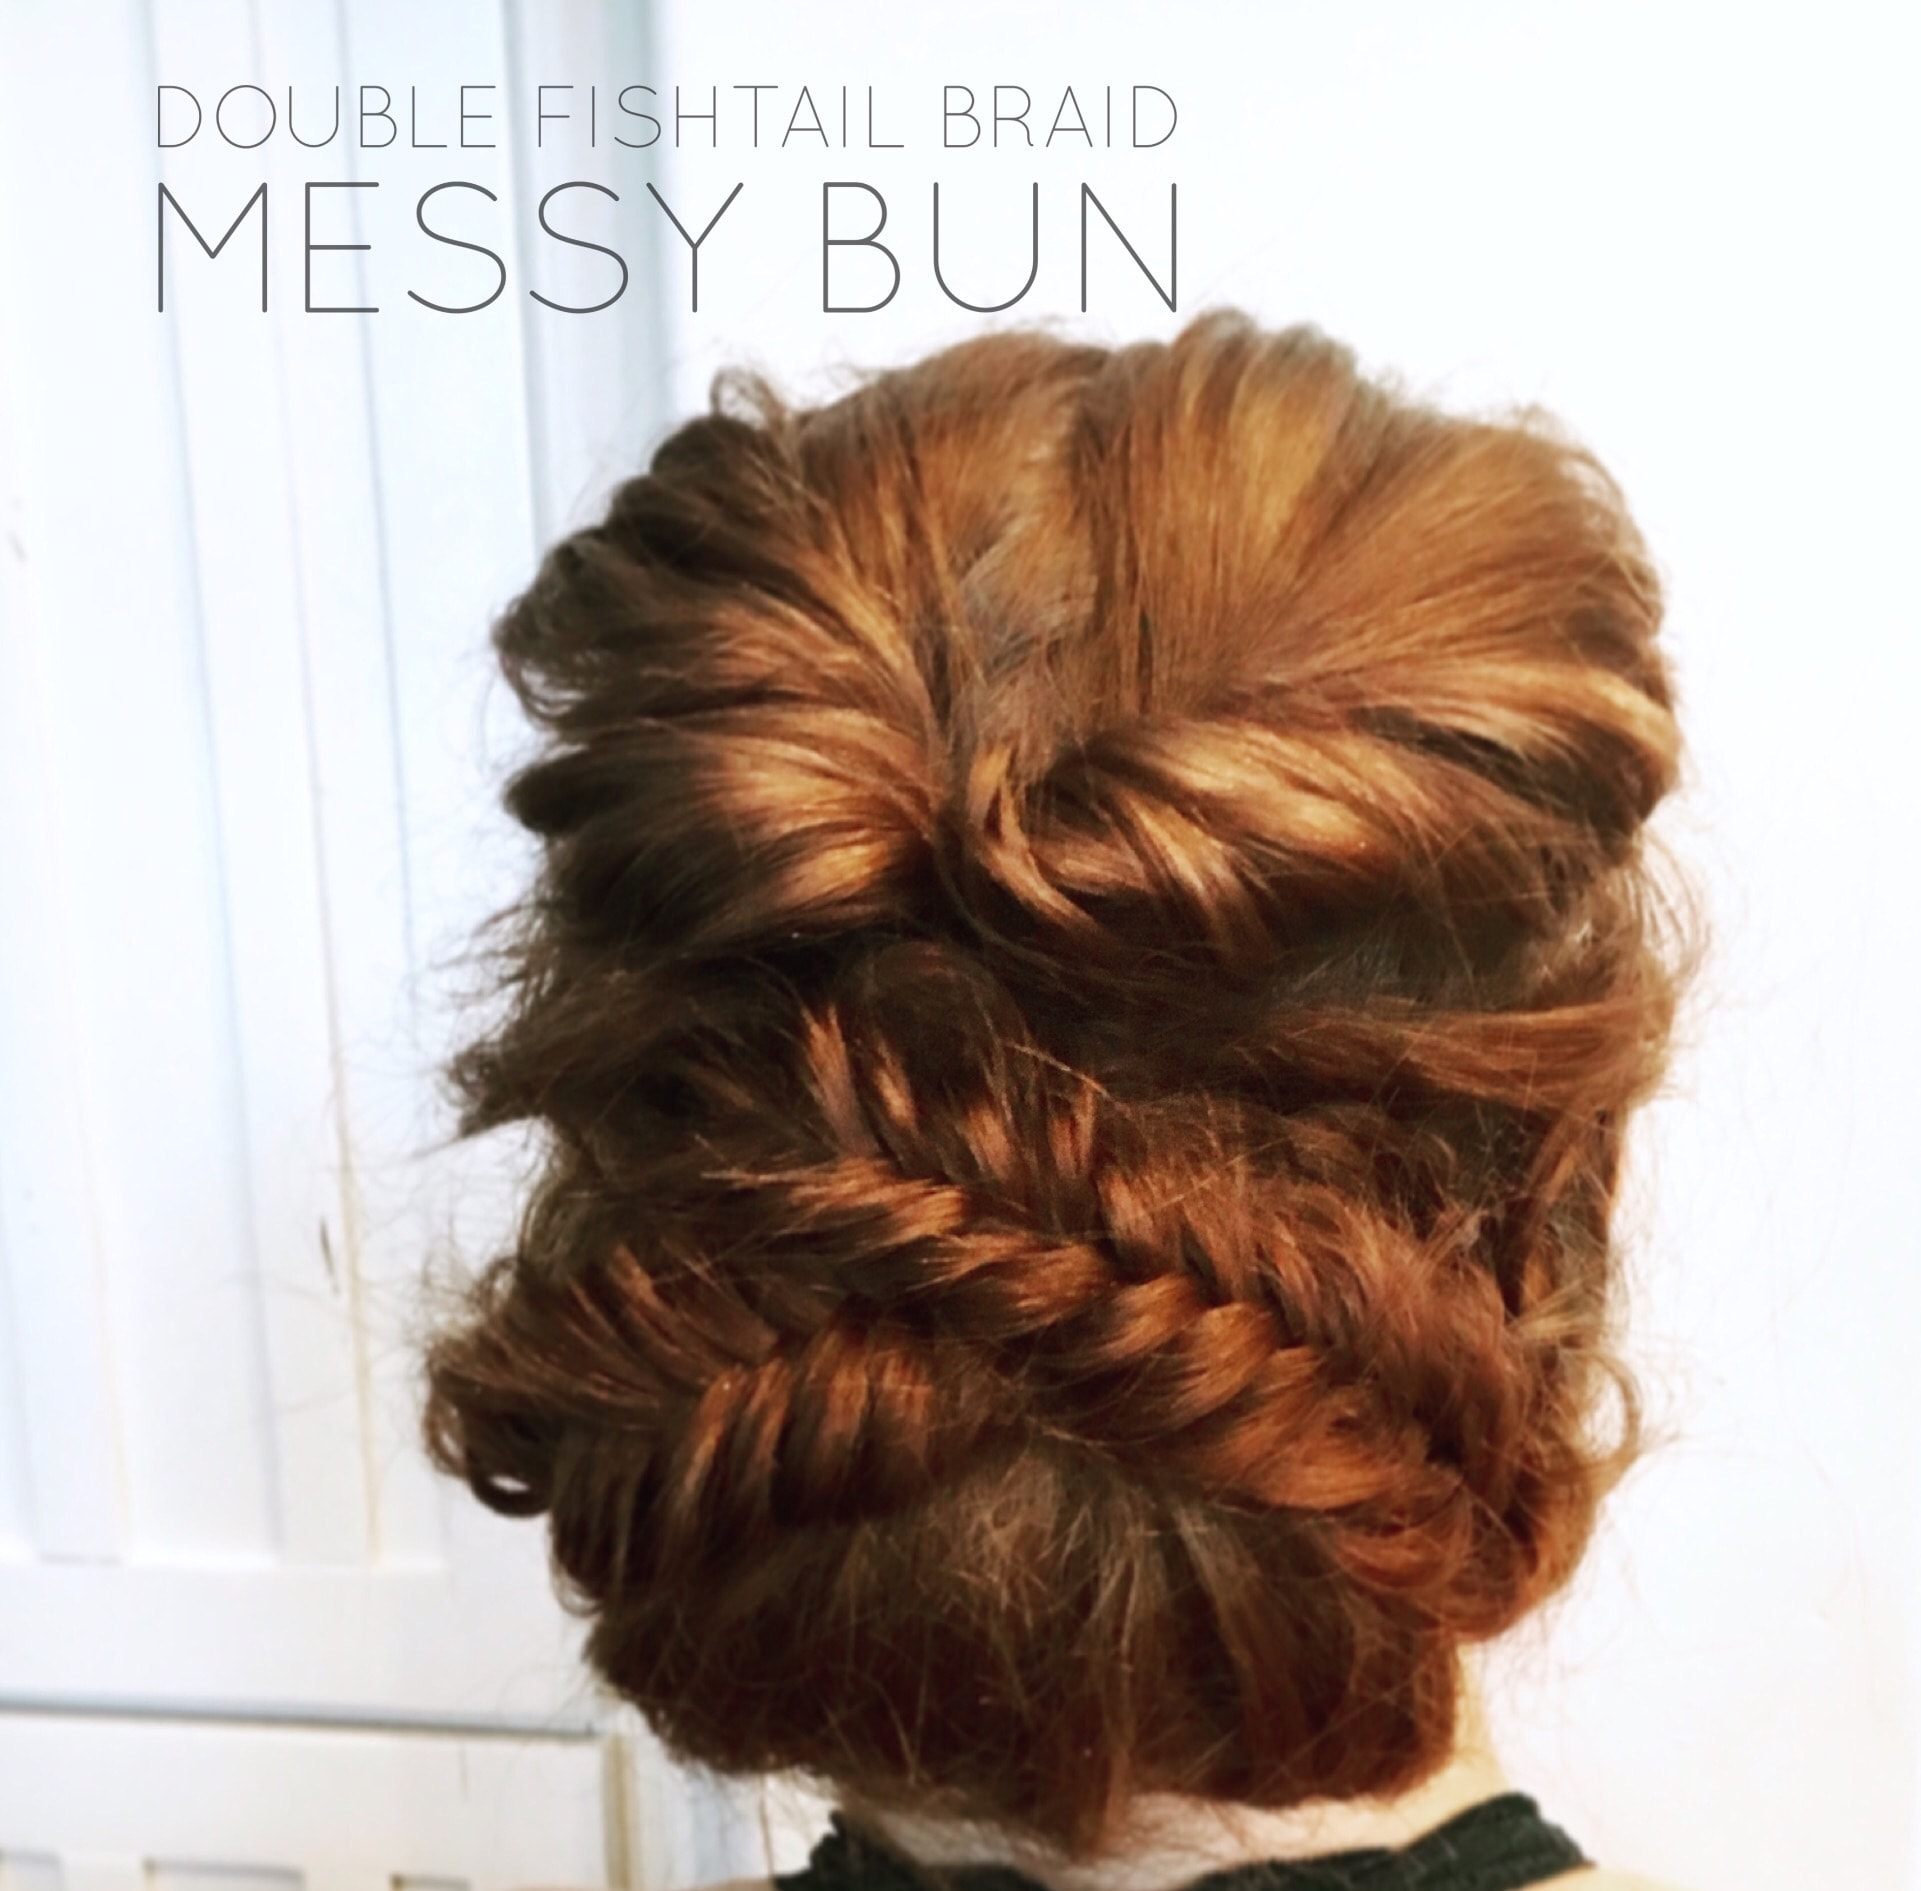 Double Fishtail Braid Messy Bun Tutorial